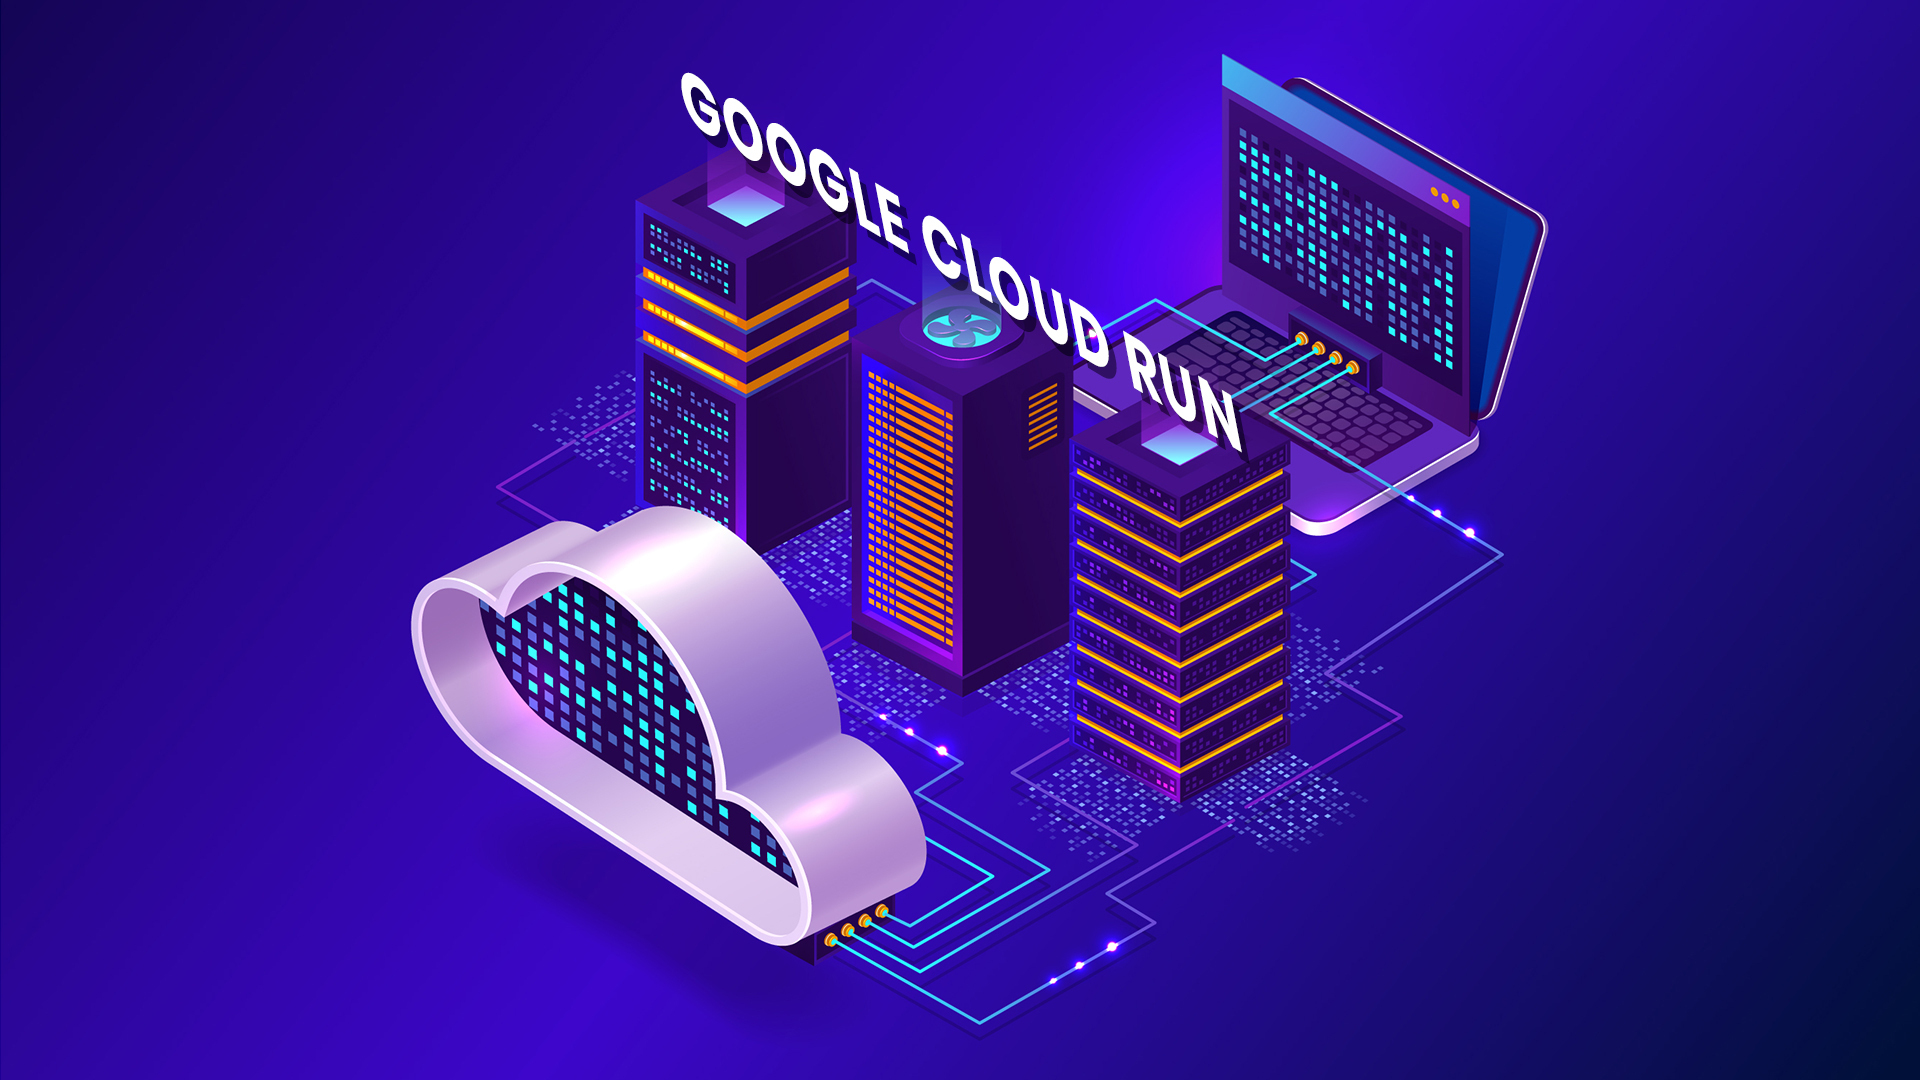 The Ultimate Guide to Google Cloud Run